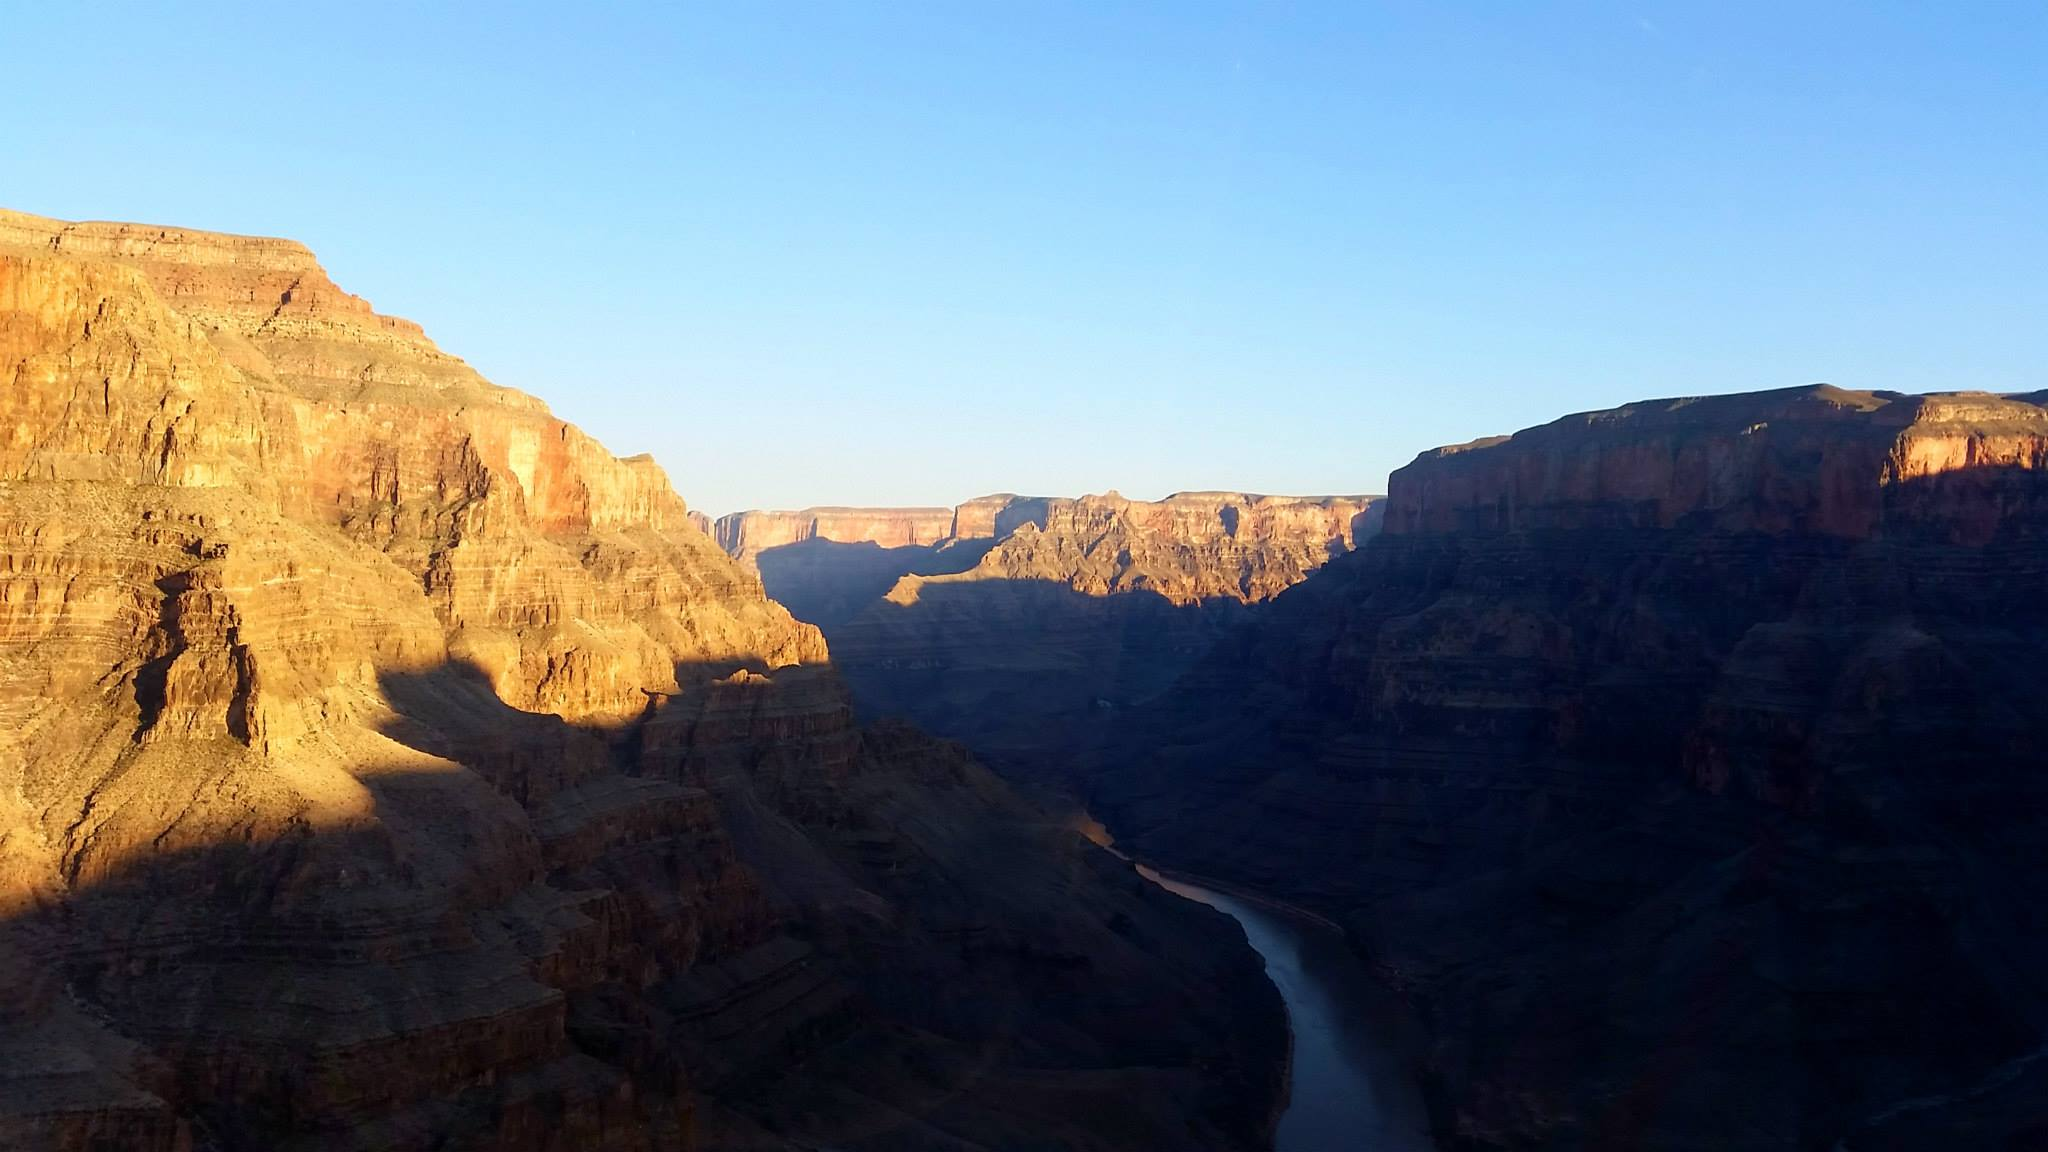 helicopter ride over grand canyon las vegas with 5 Romantic Things Gay Las Vegas on Grand Canyon South Rim Motor Coach Tour Helicopter Ride 5862 4 as well 5 Romantic Things Gay Las Vegas in addition Maverick Media also Tour Lasvegas Nights as well 2017 Rolls Royce Wraith Black Badge First Drive.